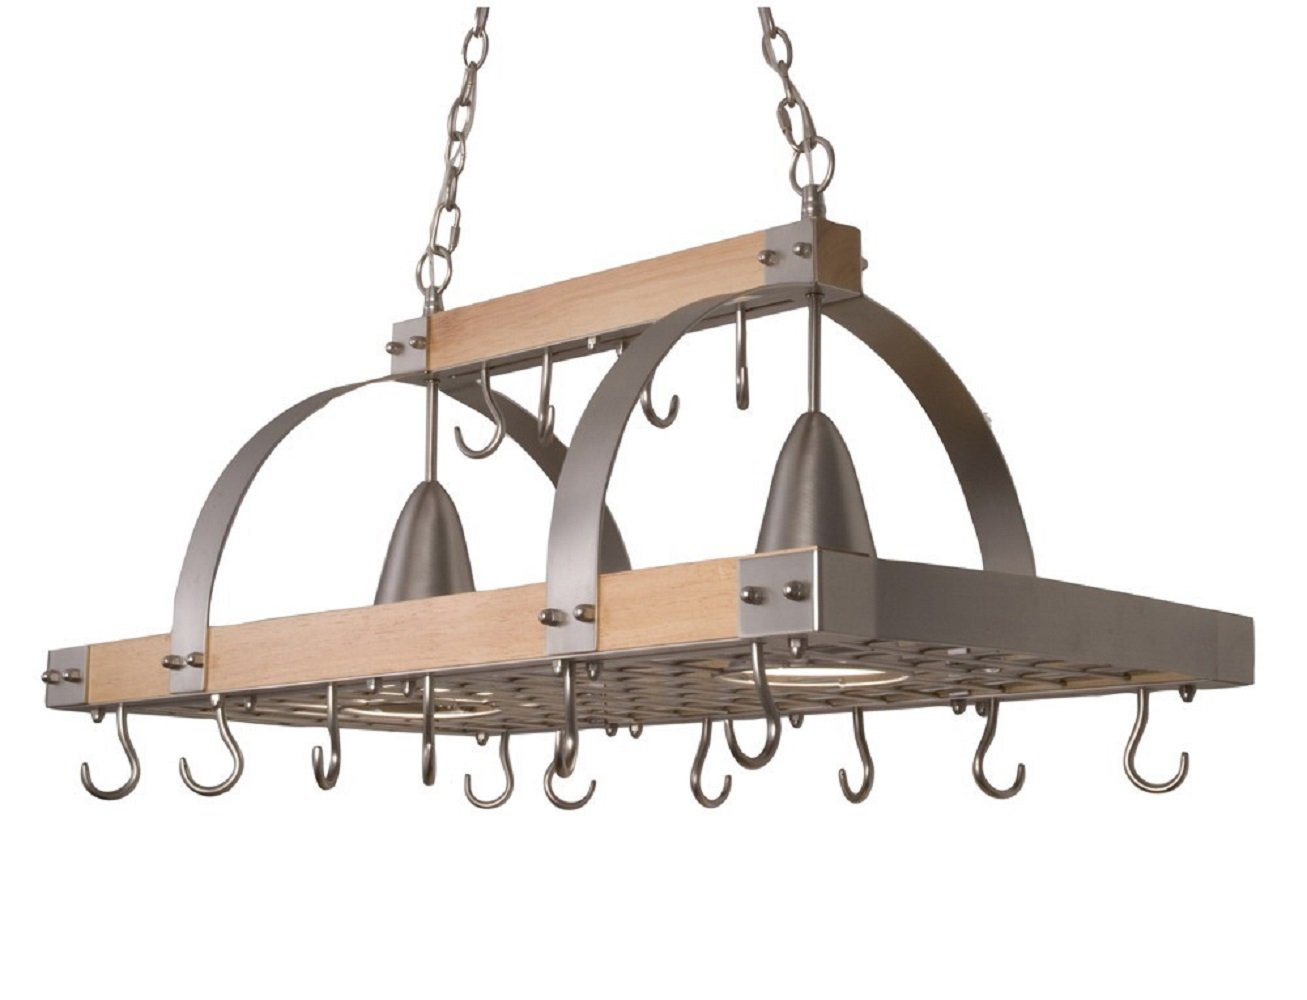 Elegant Designs PR1001-WOD 2 Light Kitchen Wood Pot Rack with Downlights, Wood with Brushed Nickel Accents by Elegant Designs